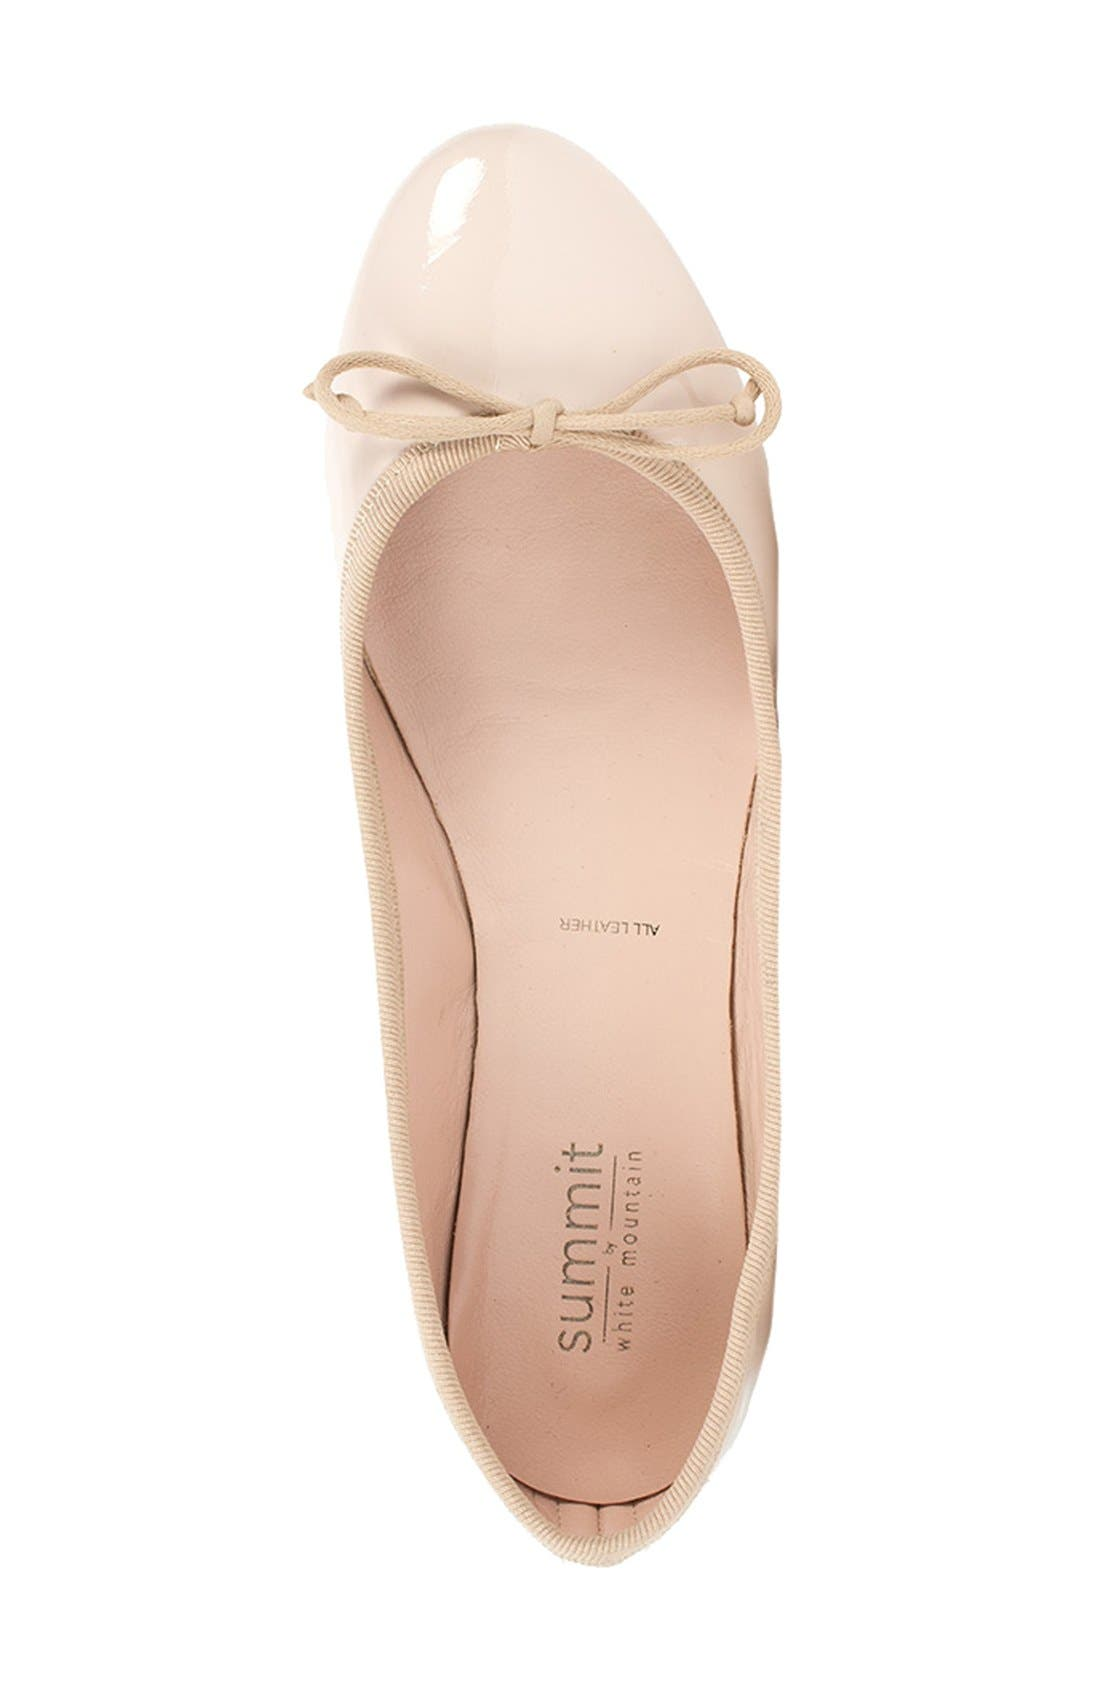 'Kendall' Ballet Flat,                             Alternate thumbnail 3, color,                             Nude Patent Leather